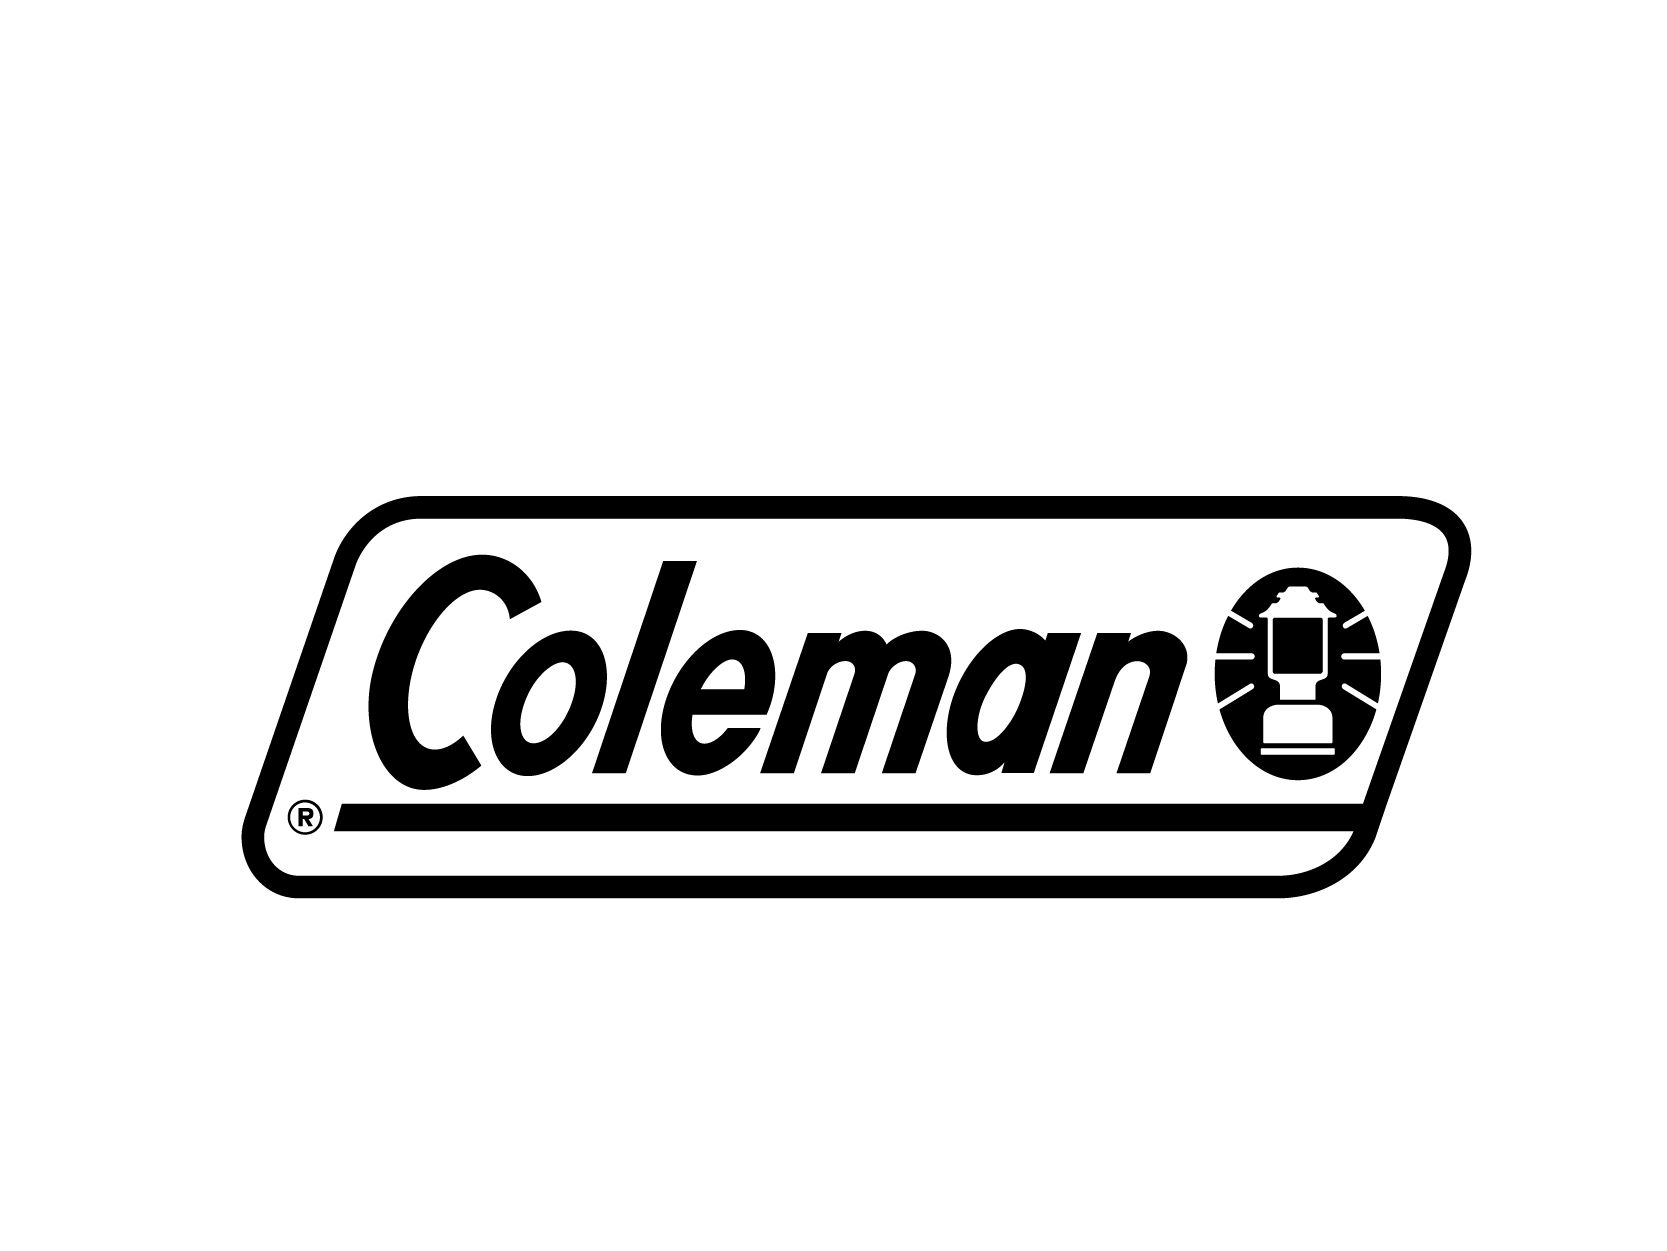 Coleman high performance Hiking shoes developer